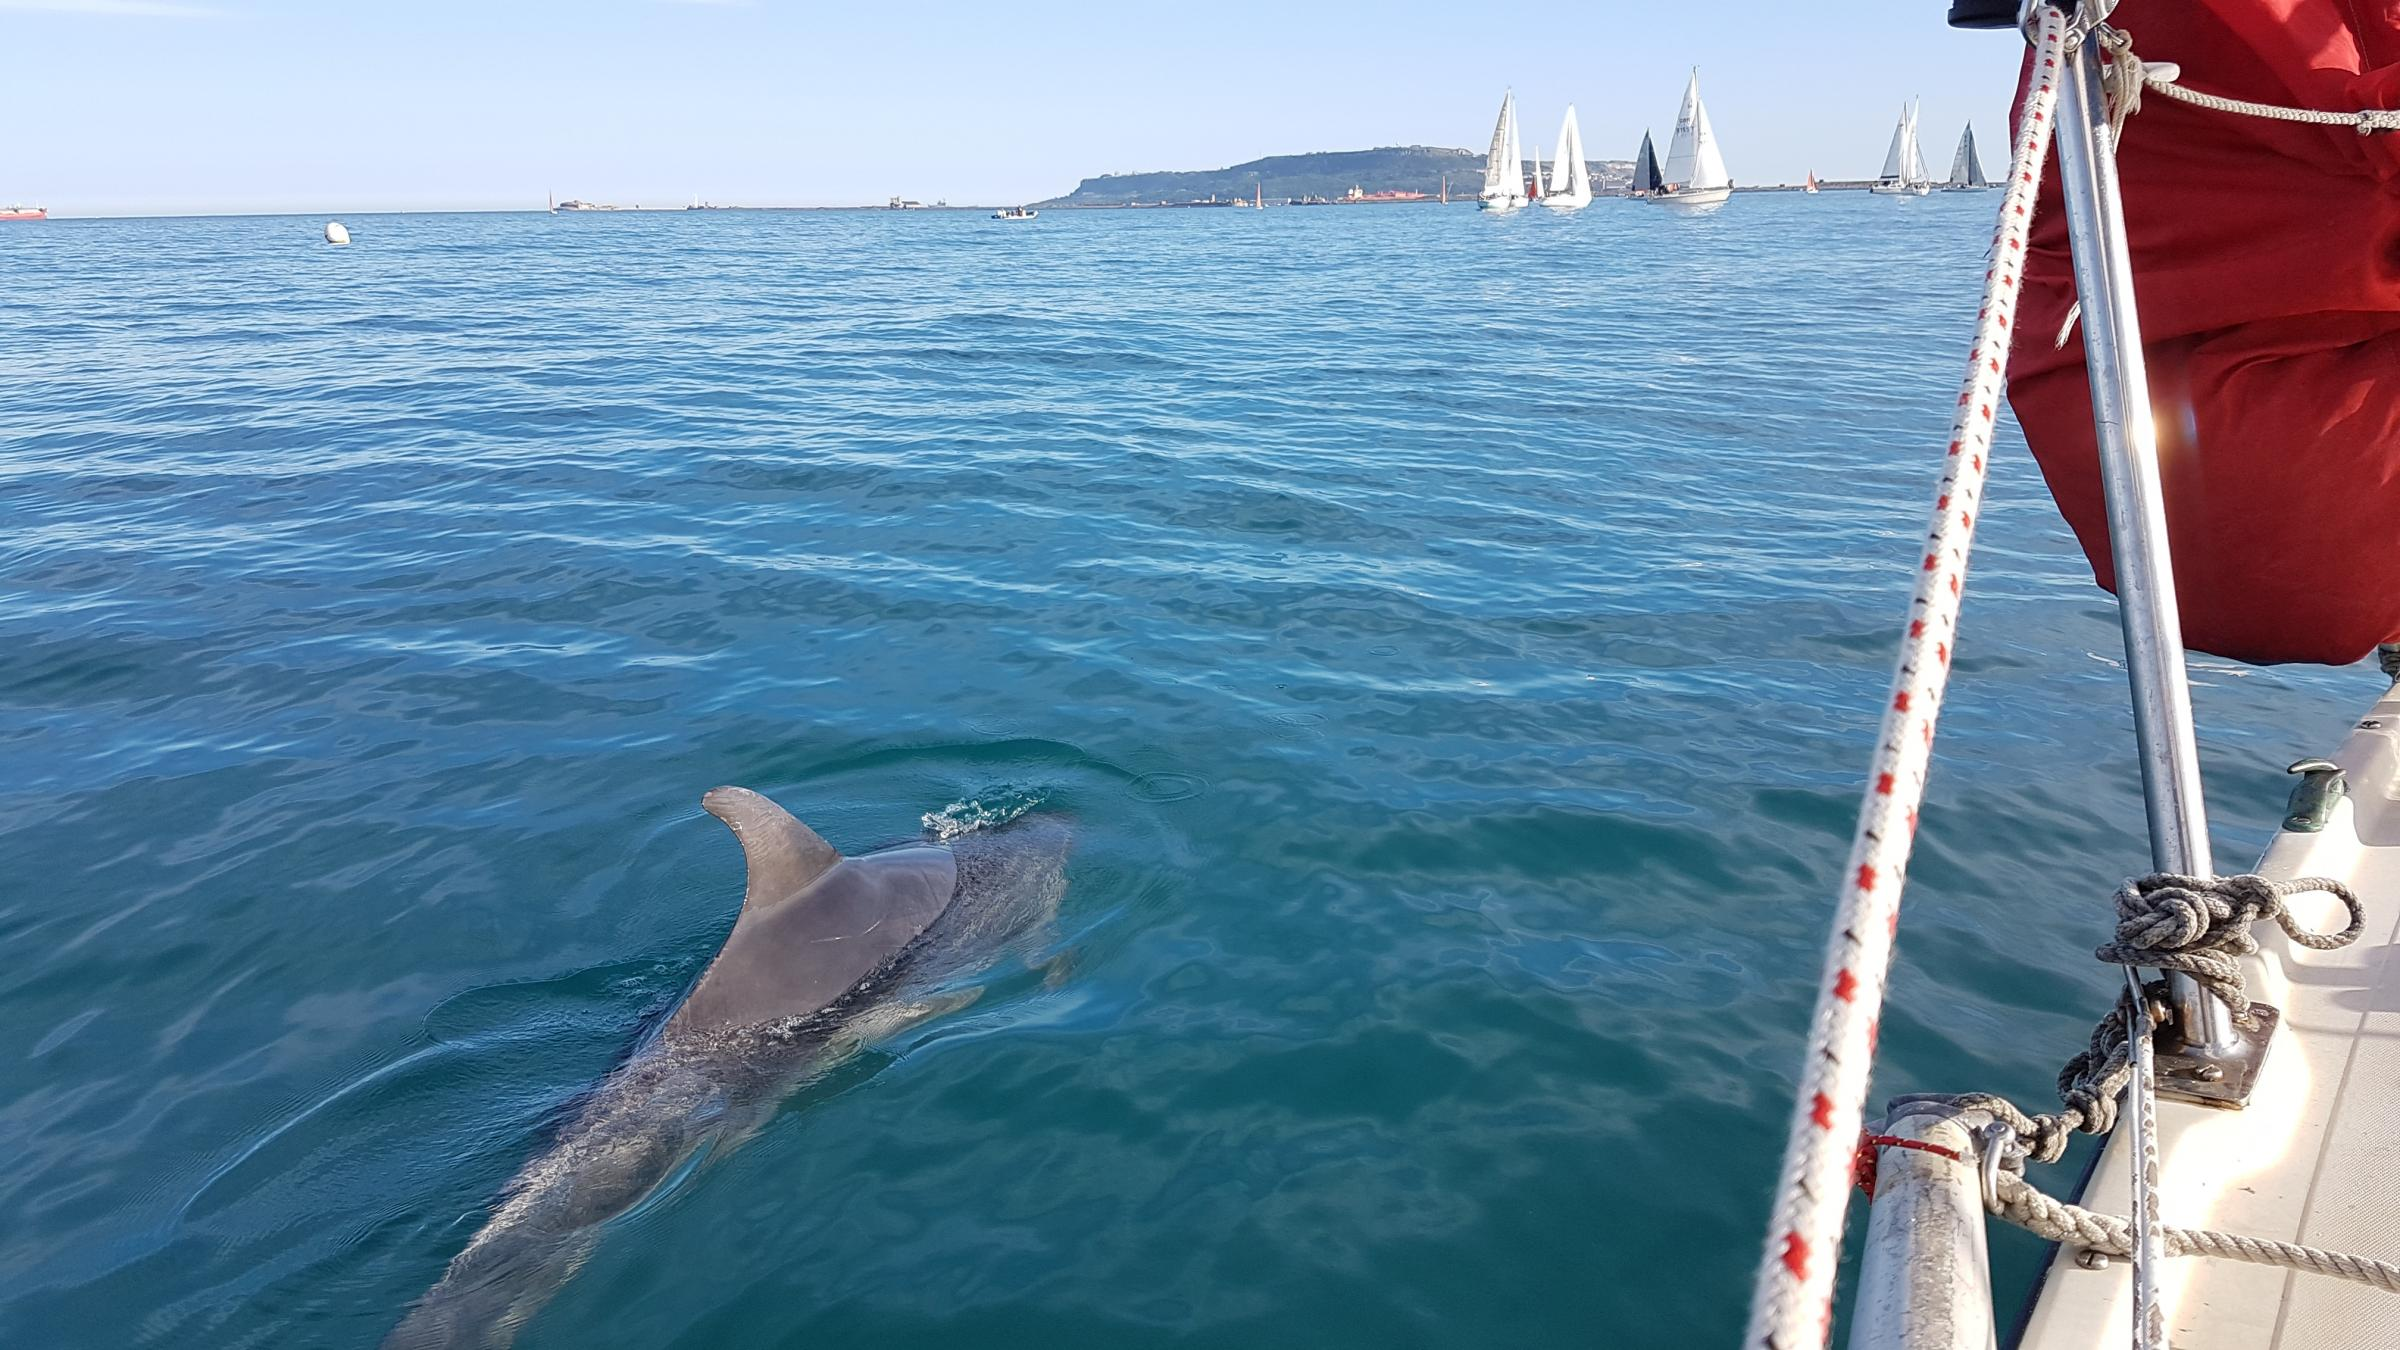 Weymouth Bay sailors visited by Danny the Dolphin